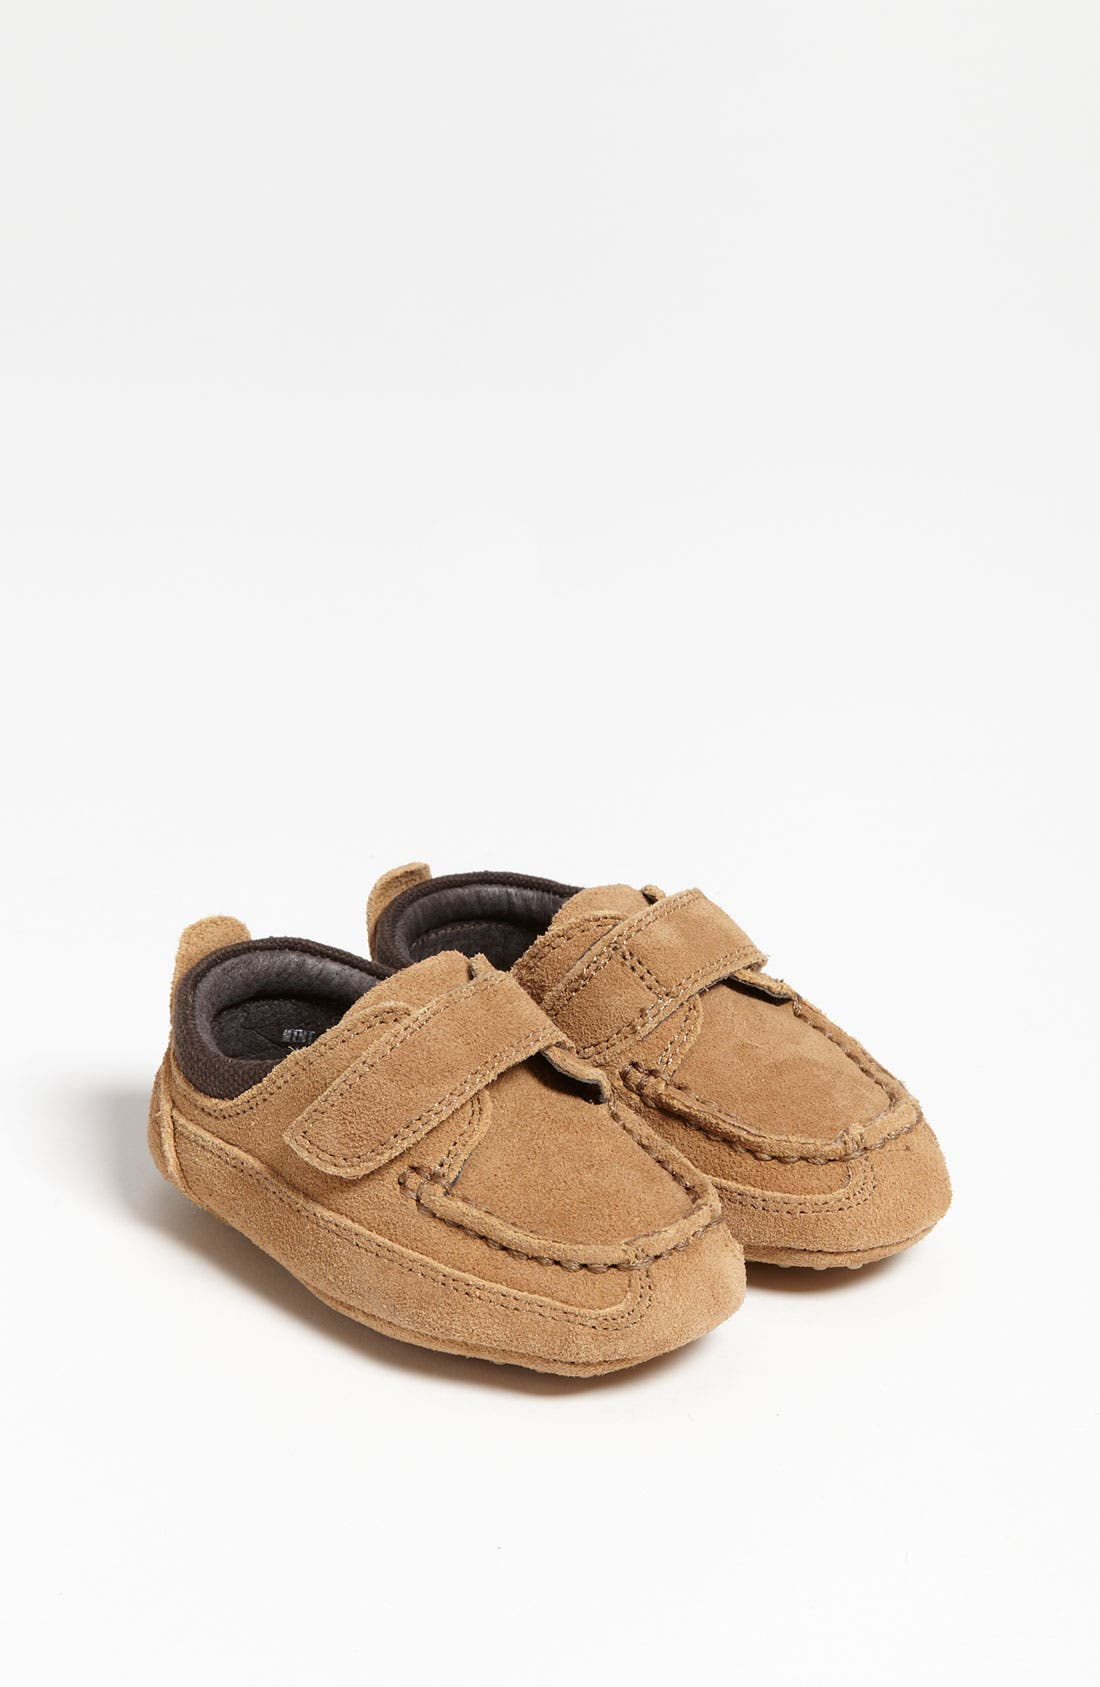 Alternate Image 1 Selected - Cole Haan 'Mini Johnny' Shoe (Baby)